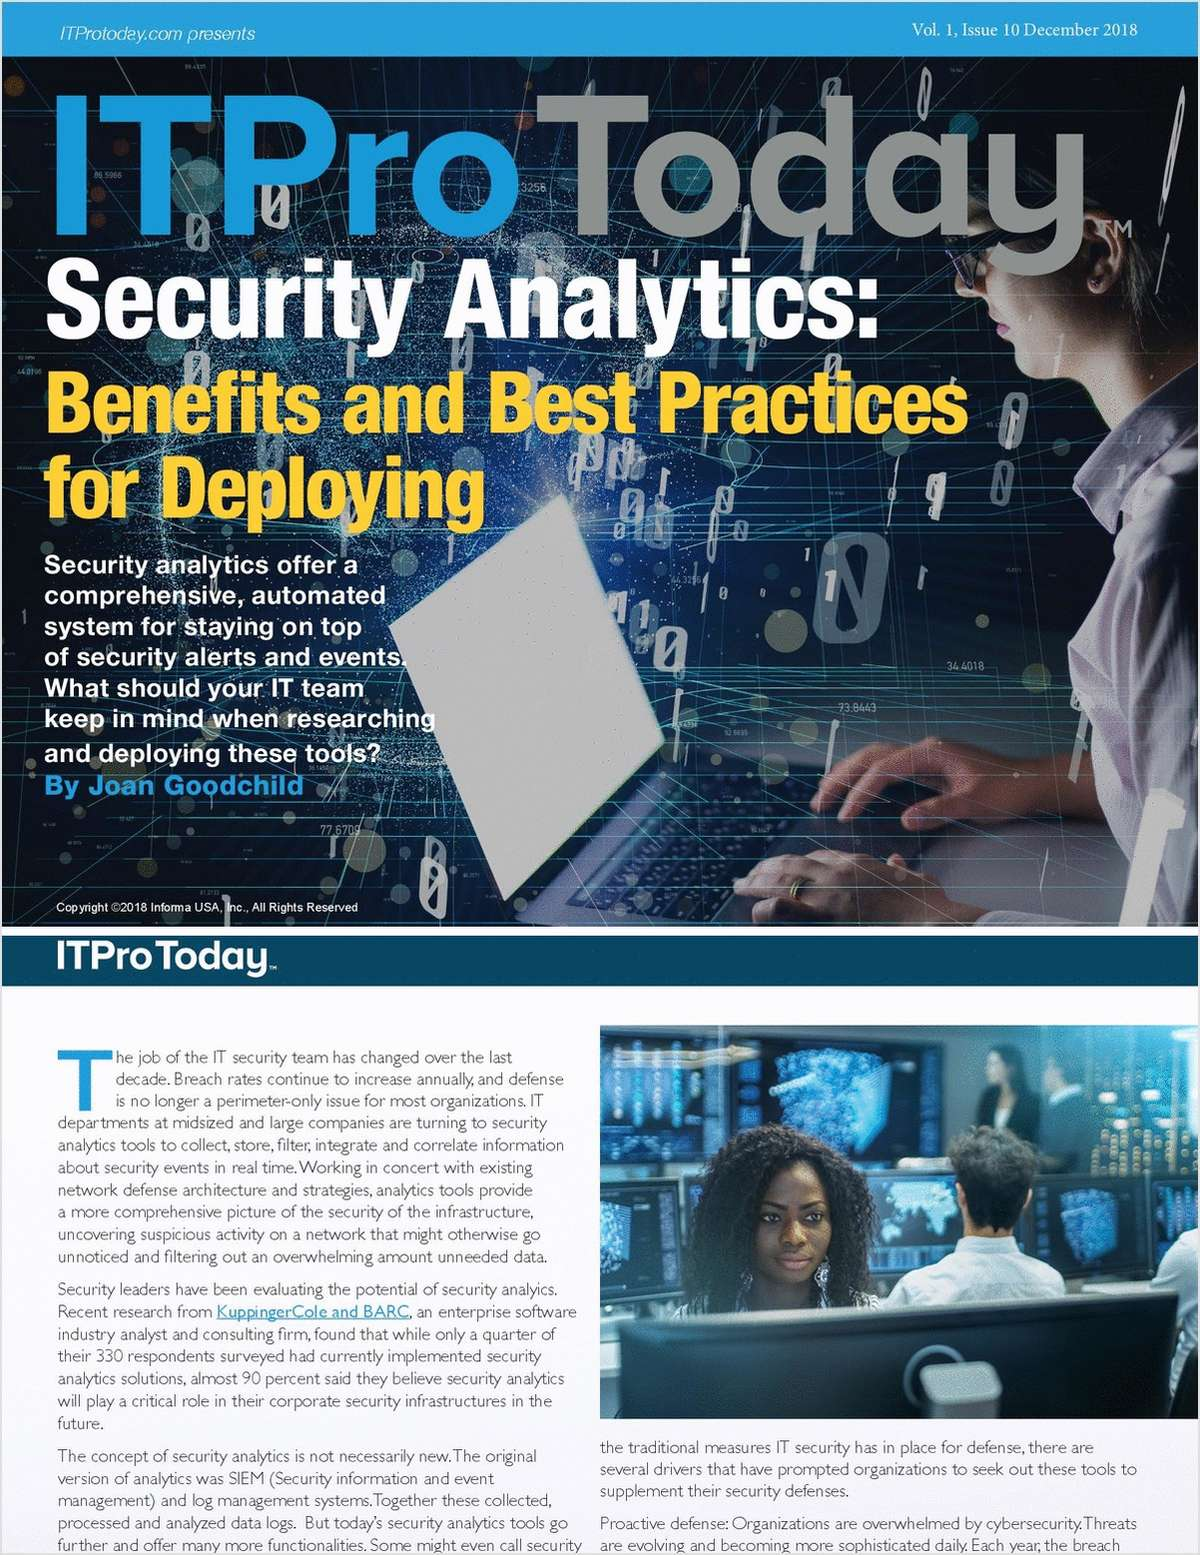 Security Analytics: Benefits and Best Practices for Deploying